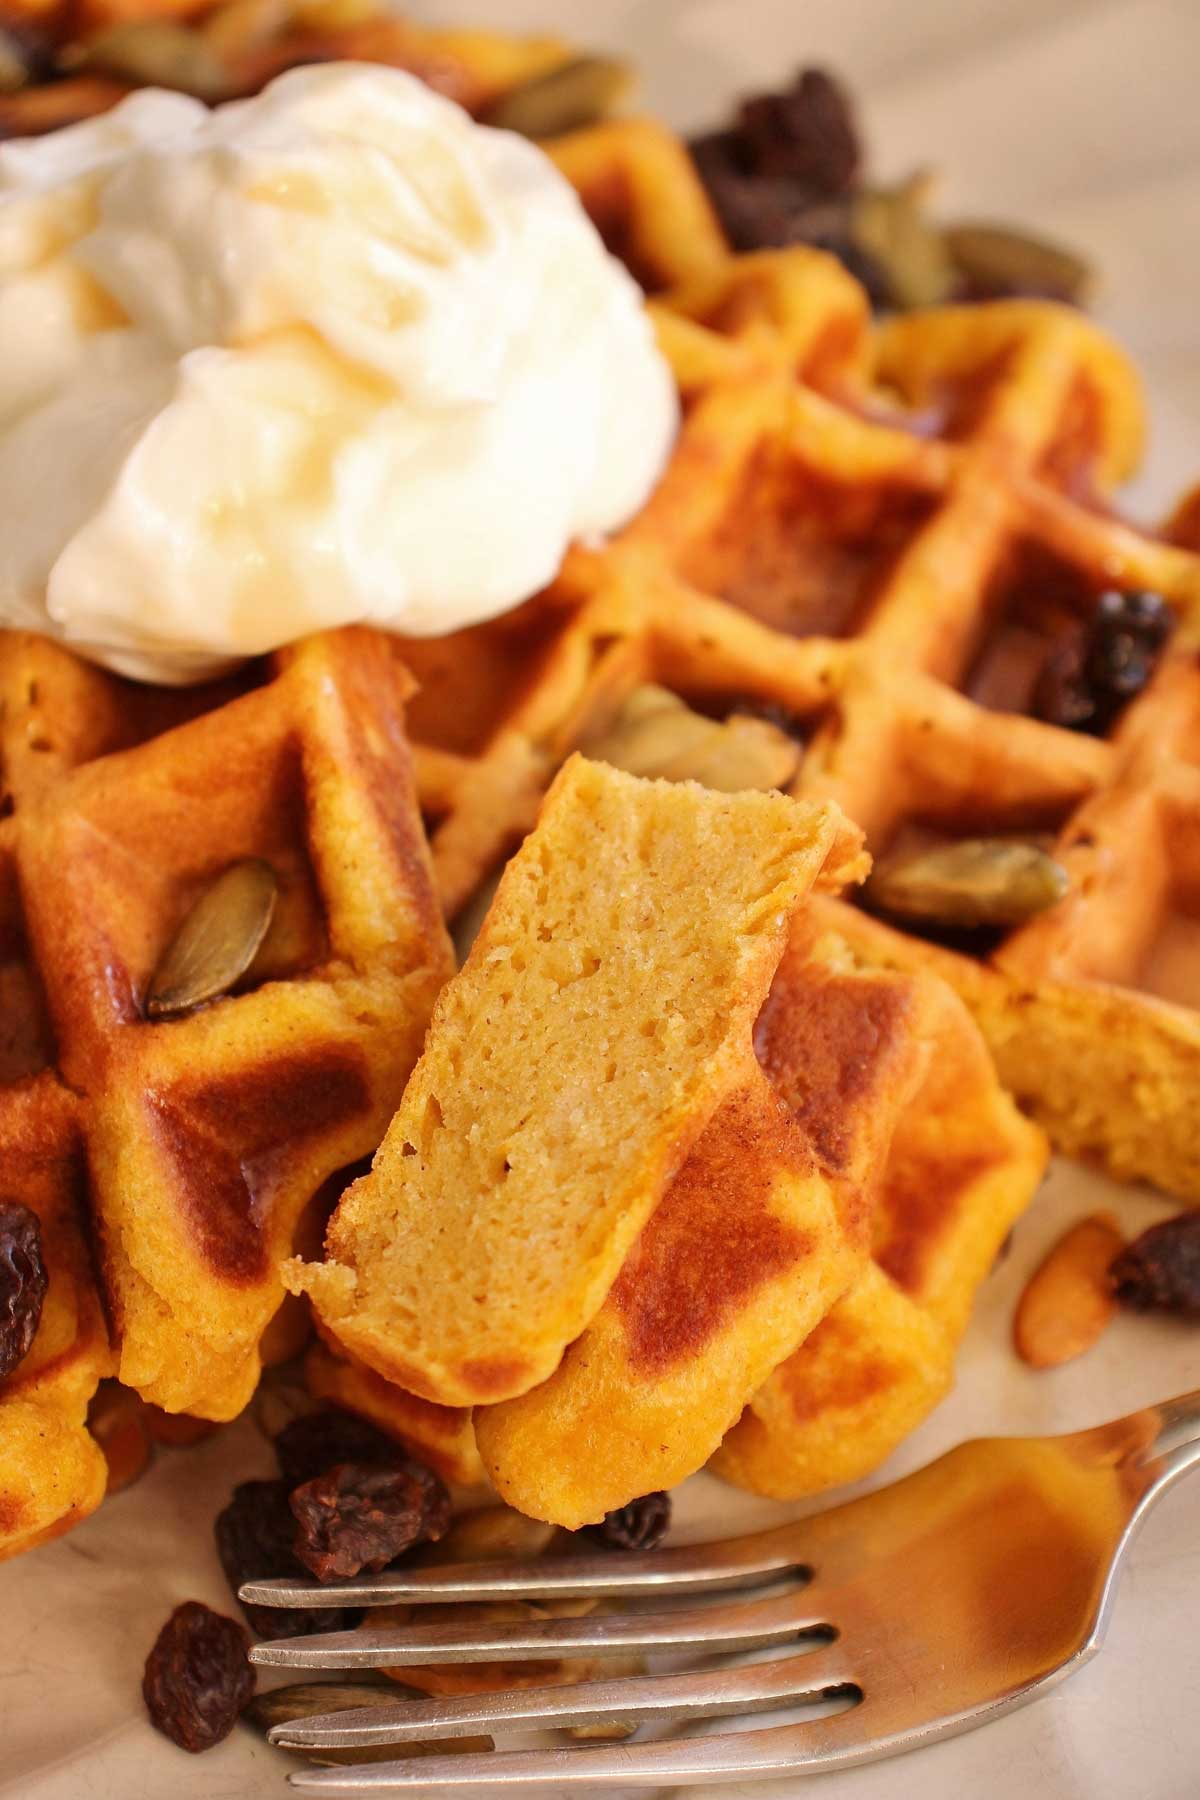 Closeup of a piece of pumpkin waffle on a plate showing off the tender interior.